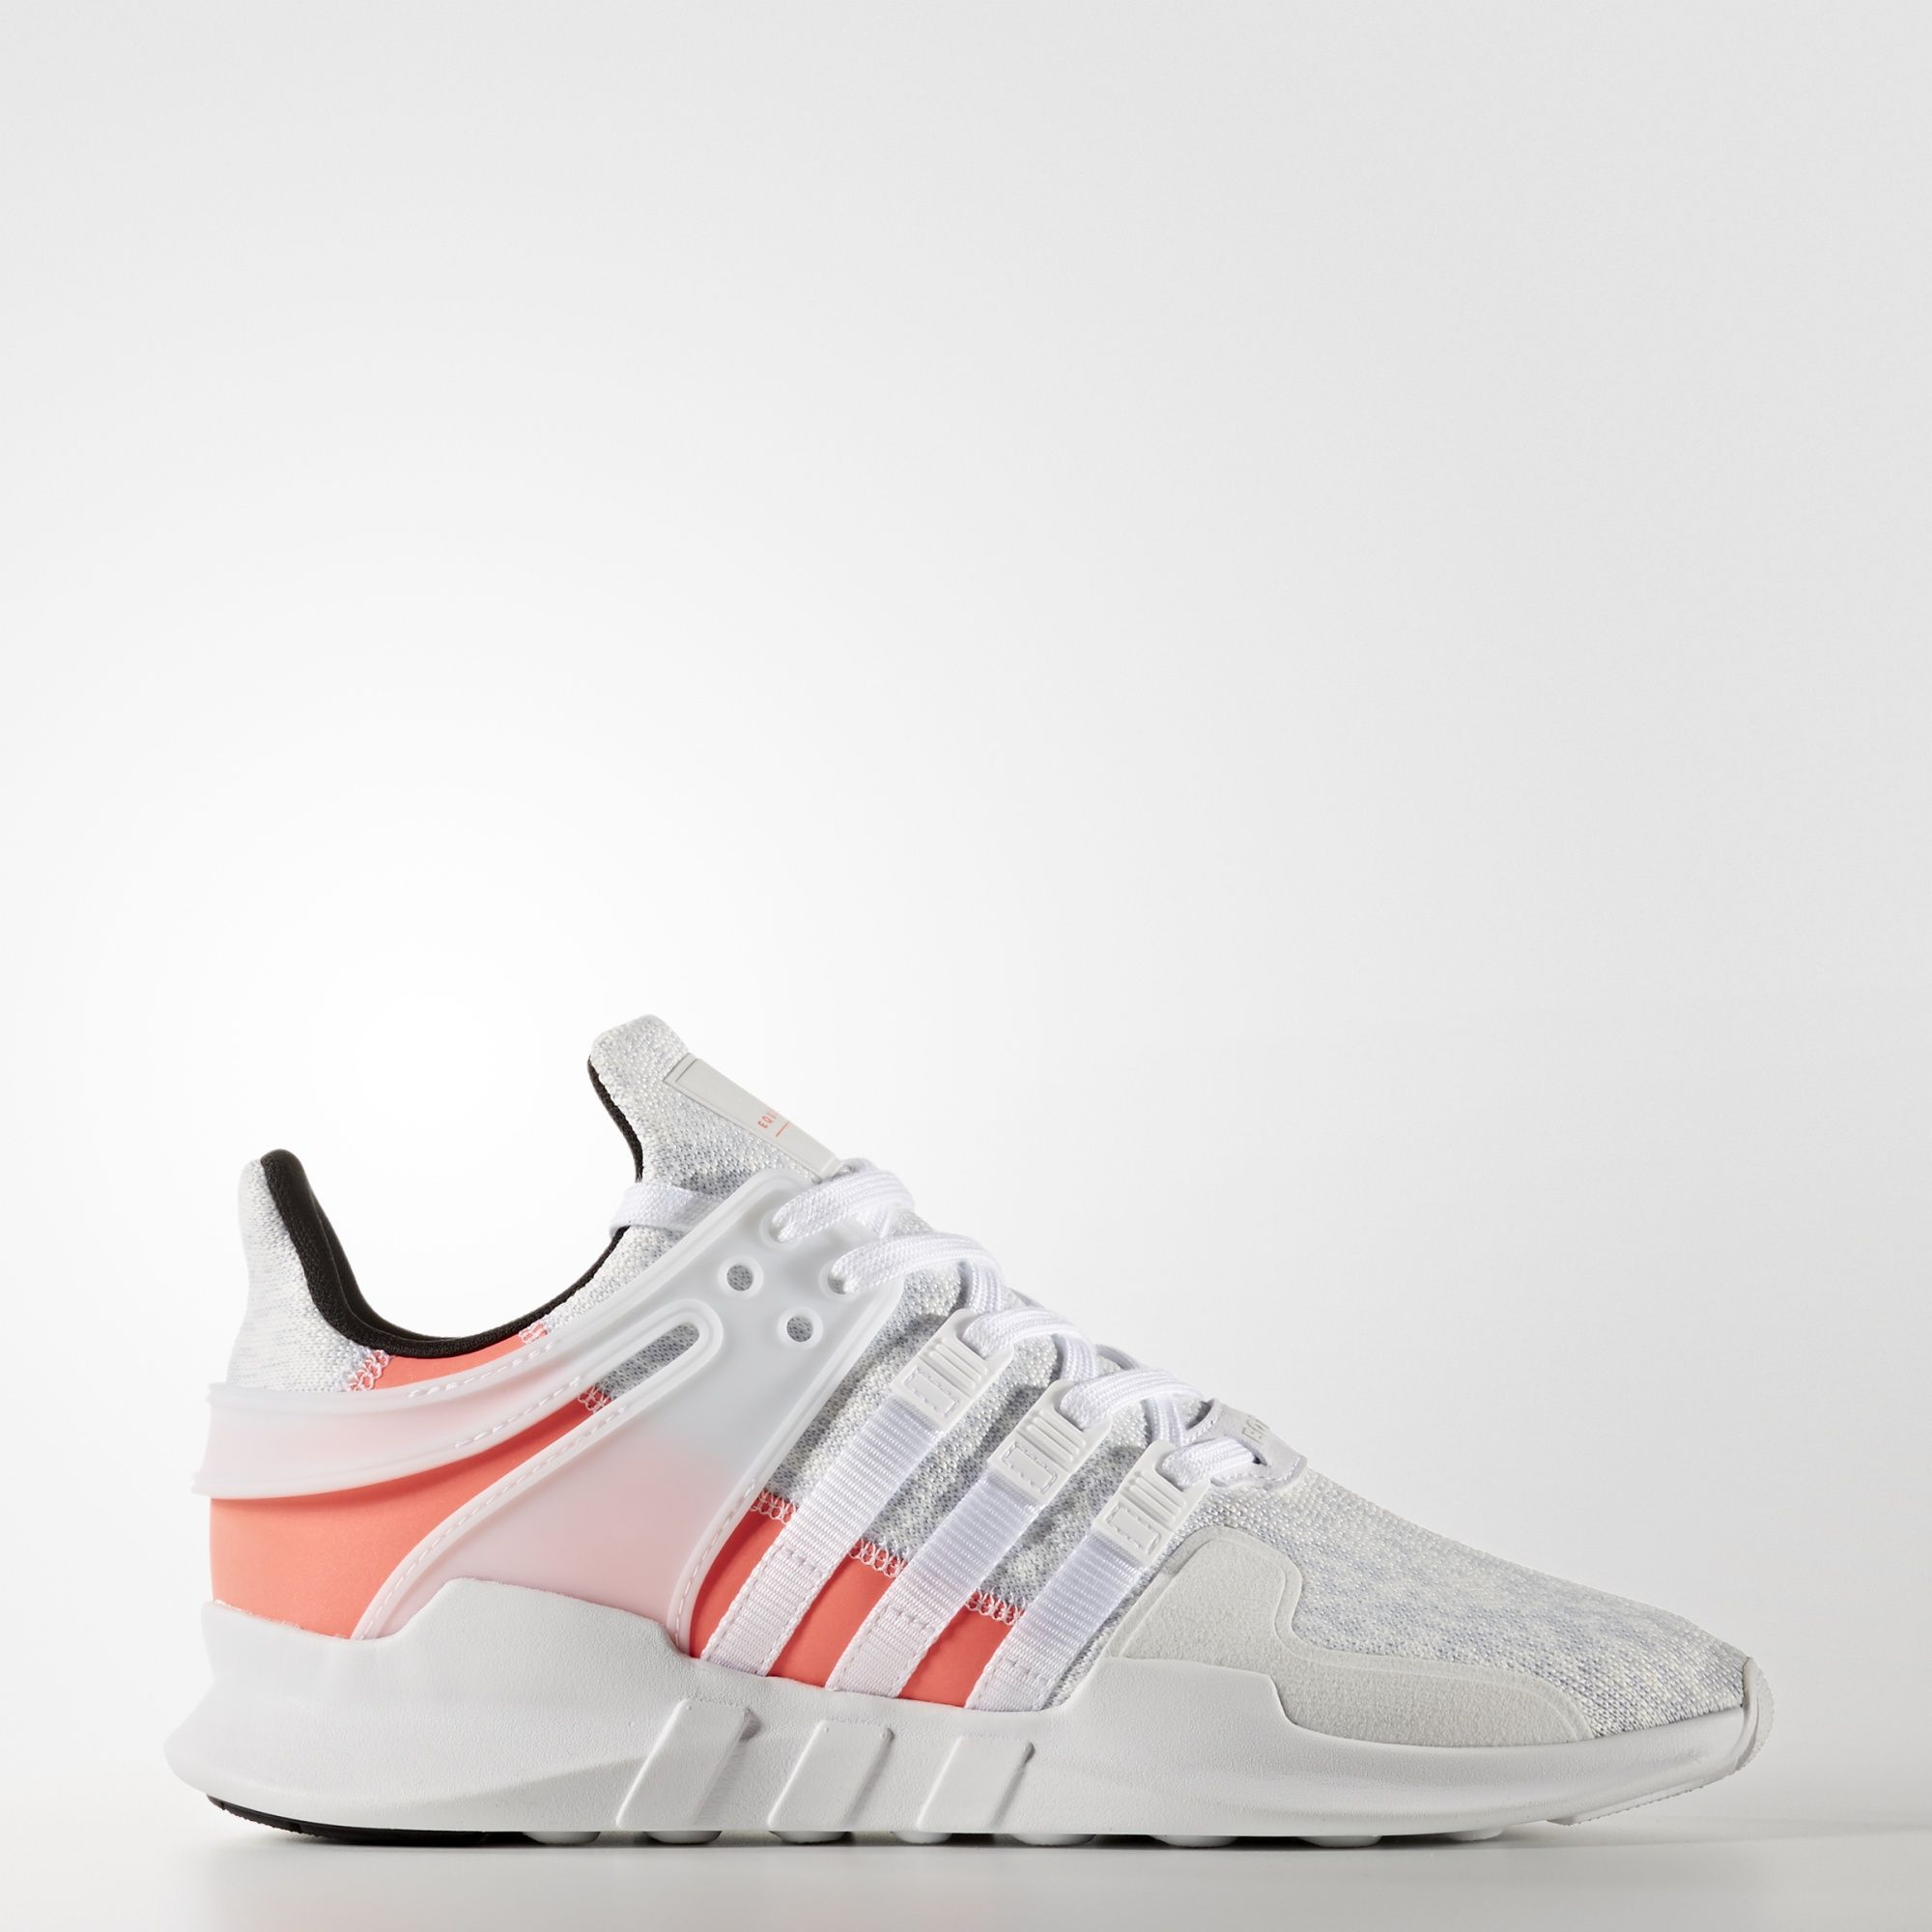 Men Newest Styles adidas Equipment Support ADV Shoes White